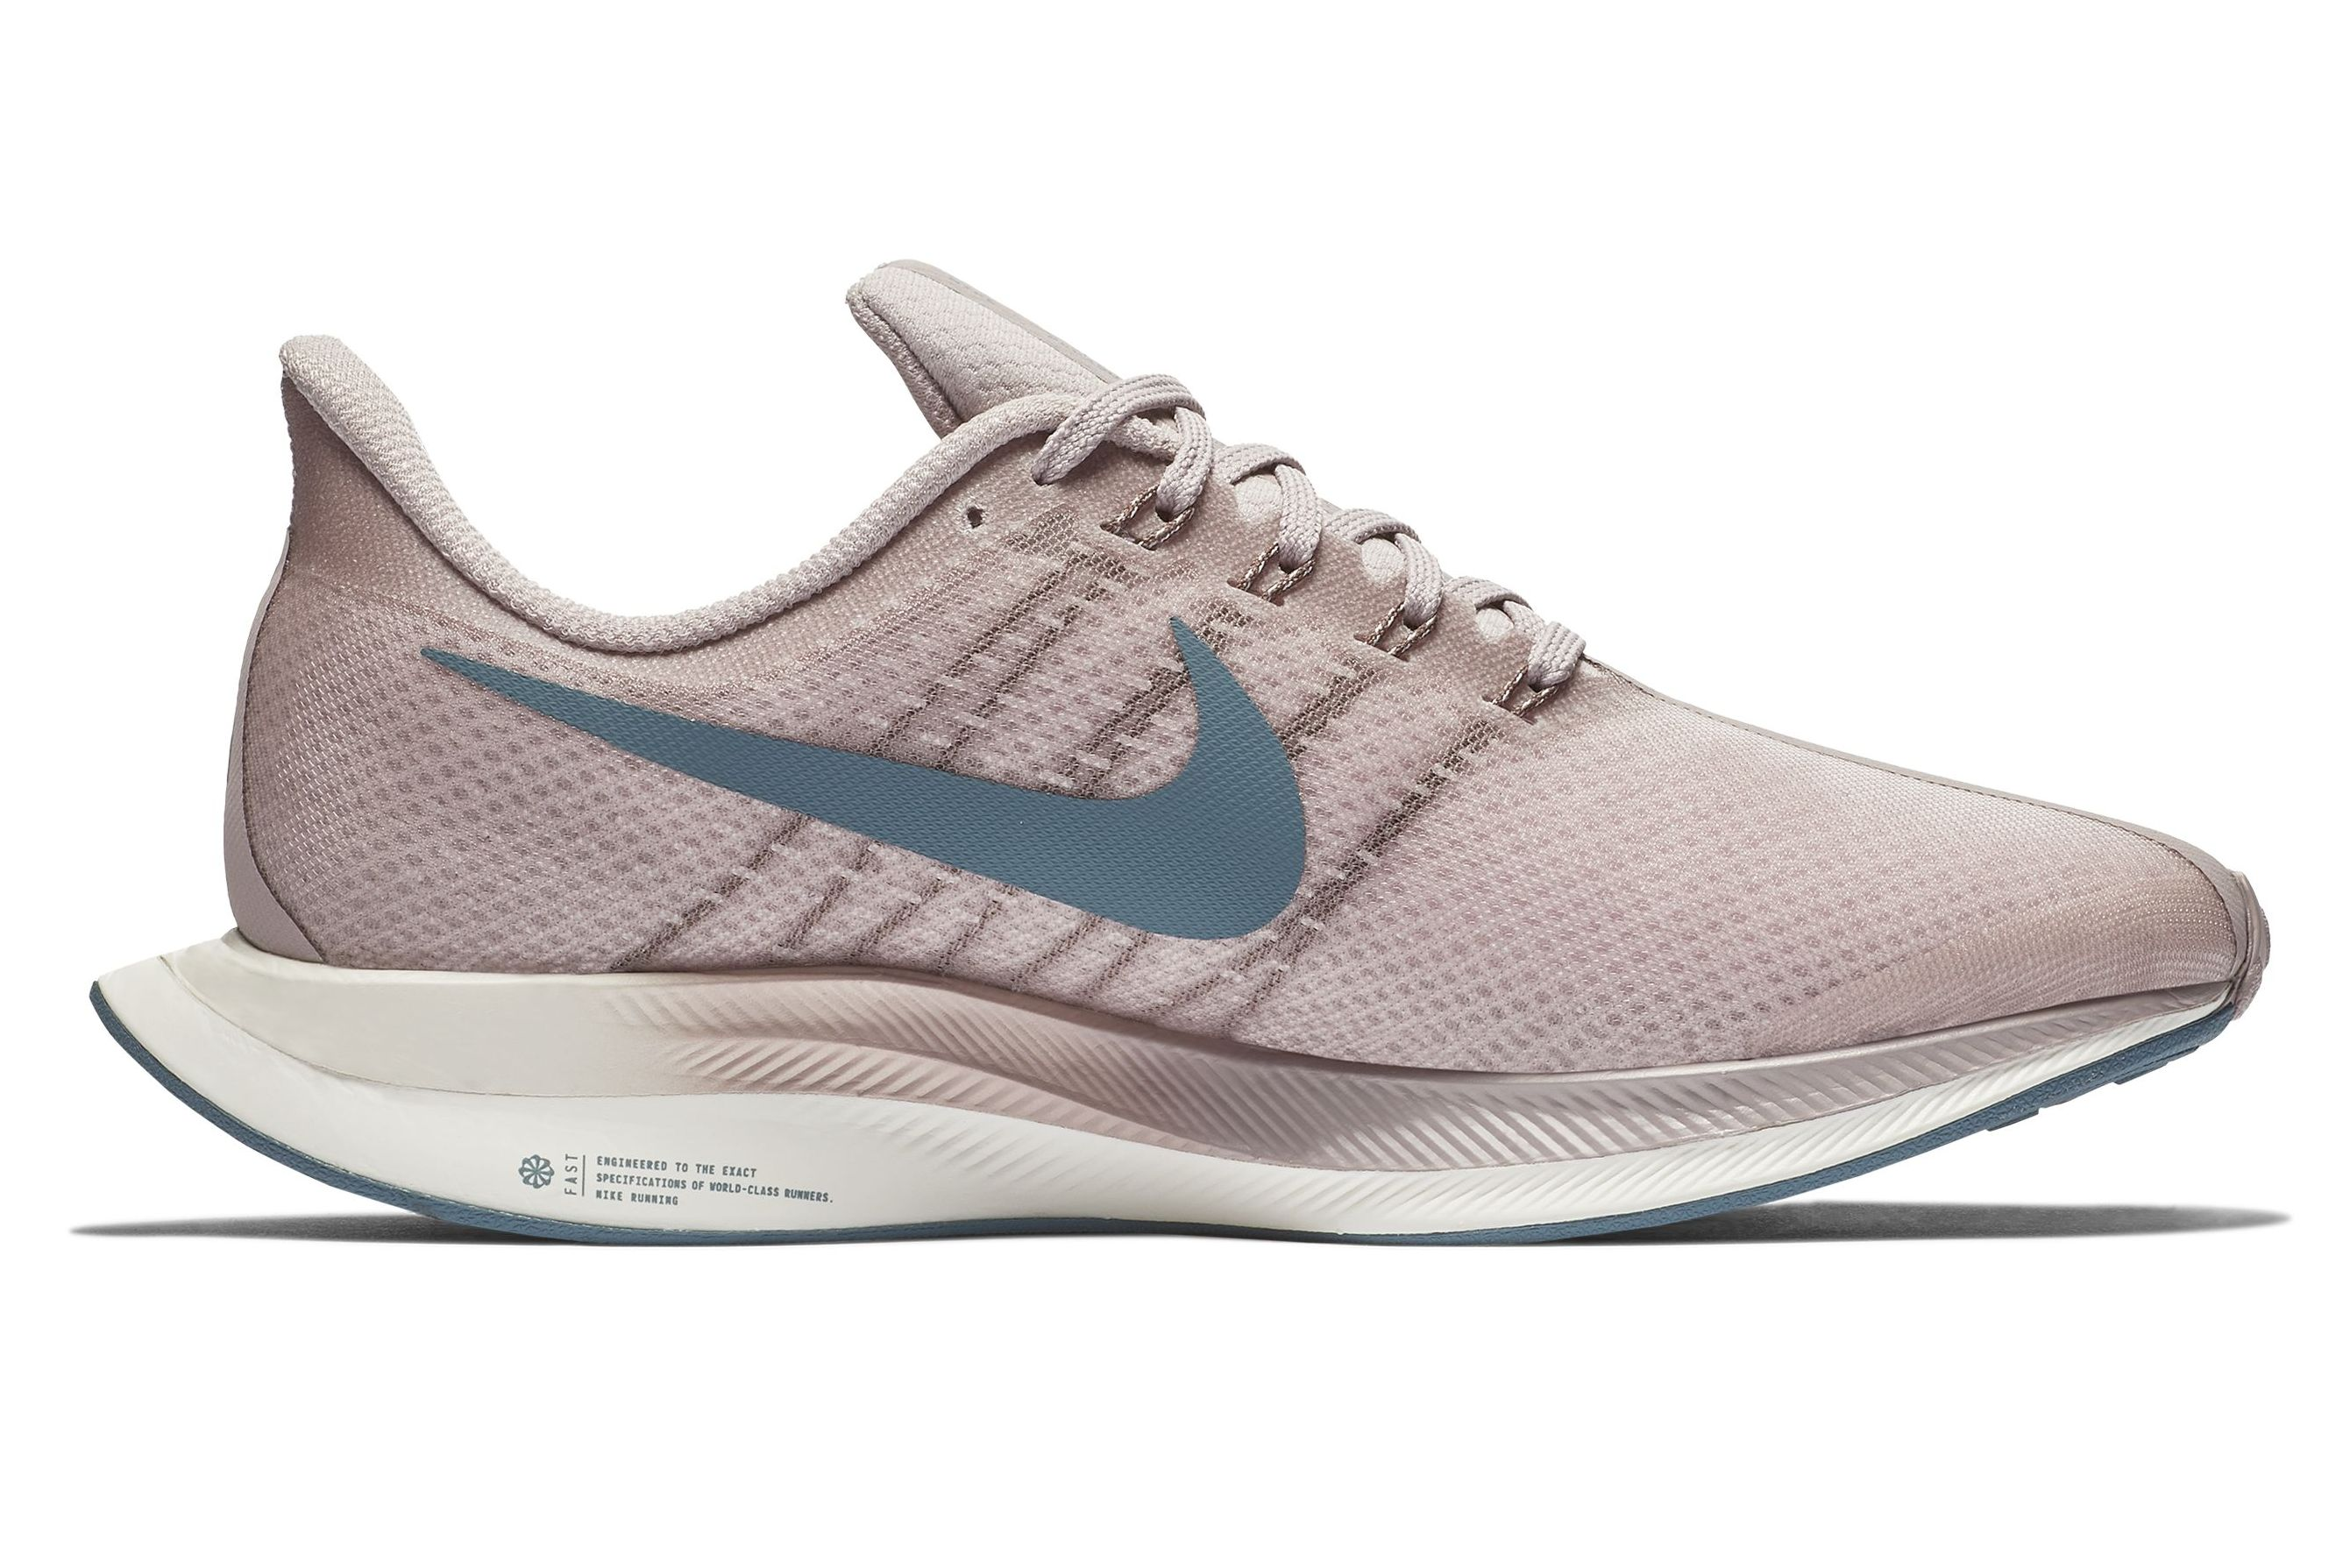 ab41337d636c Nike Running Shoes for Women – Best Running Shoes for Women 2019